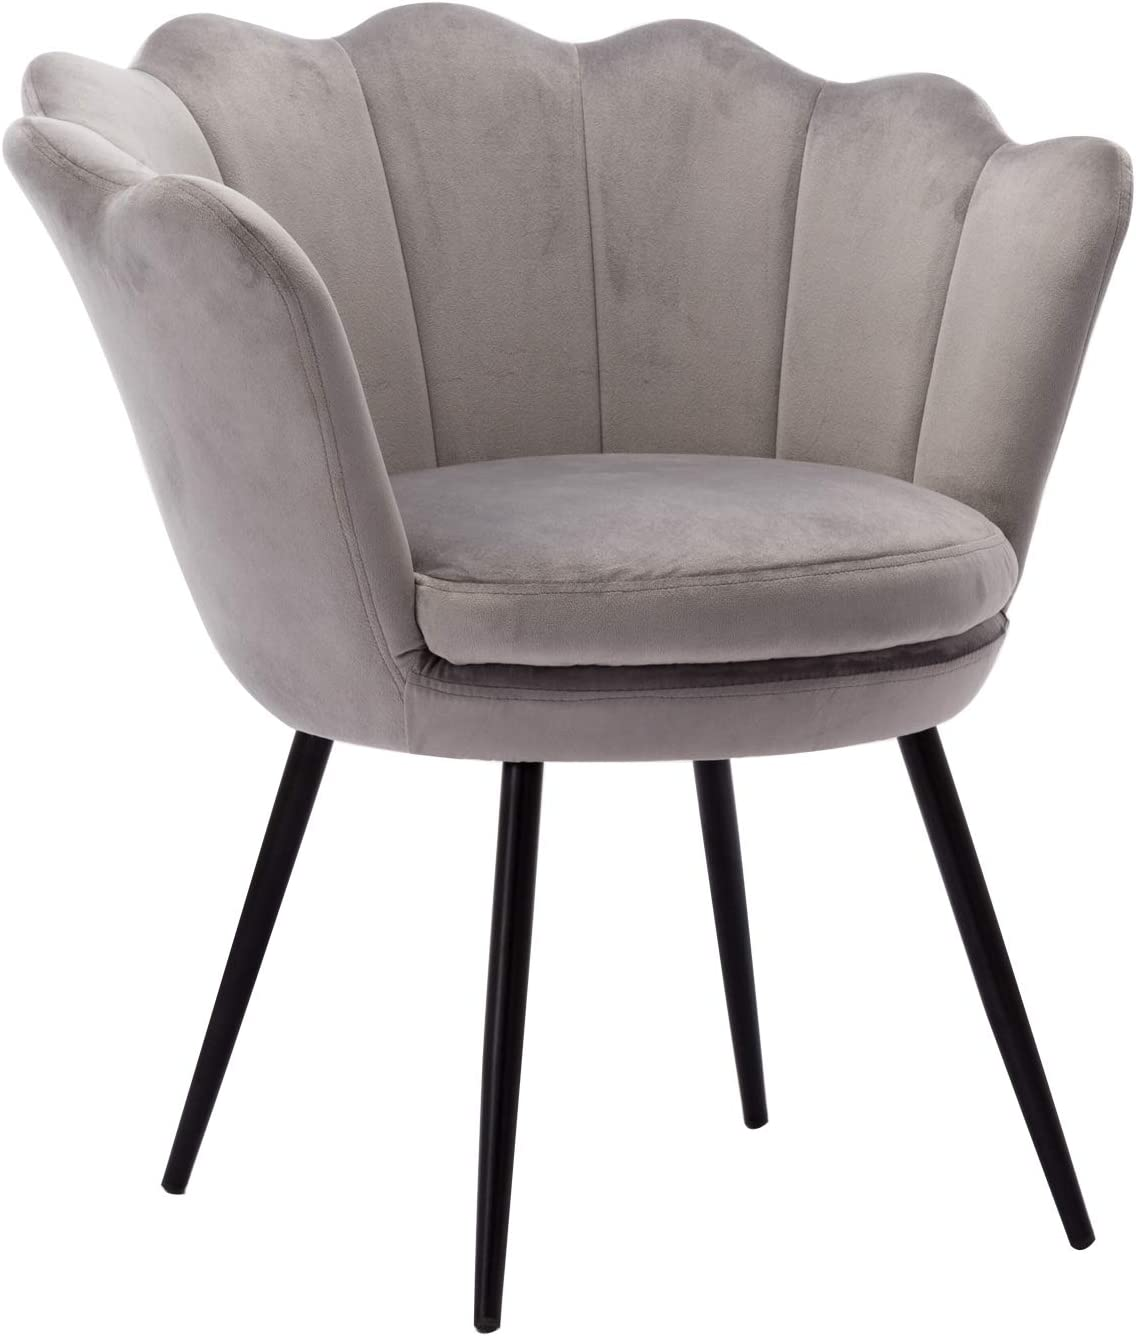 Comfy Desk Chair no Wheels, Velvet Upholstered Accent Chair, Vanity Chair for Living Room, Bedroom, Dining Room, Grey